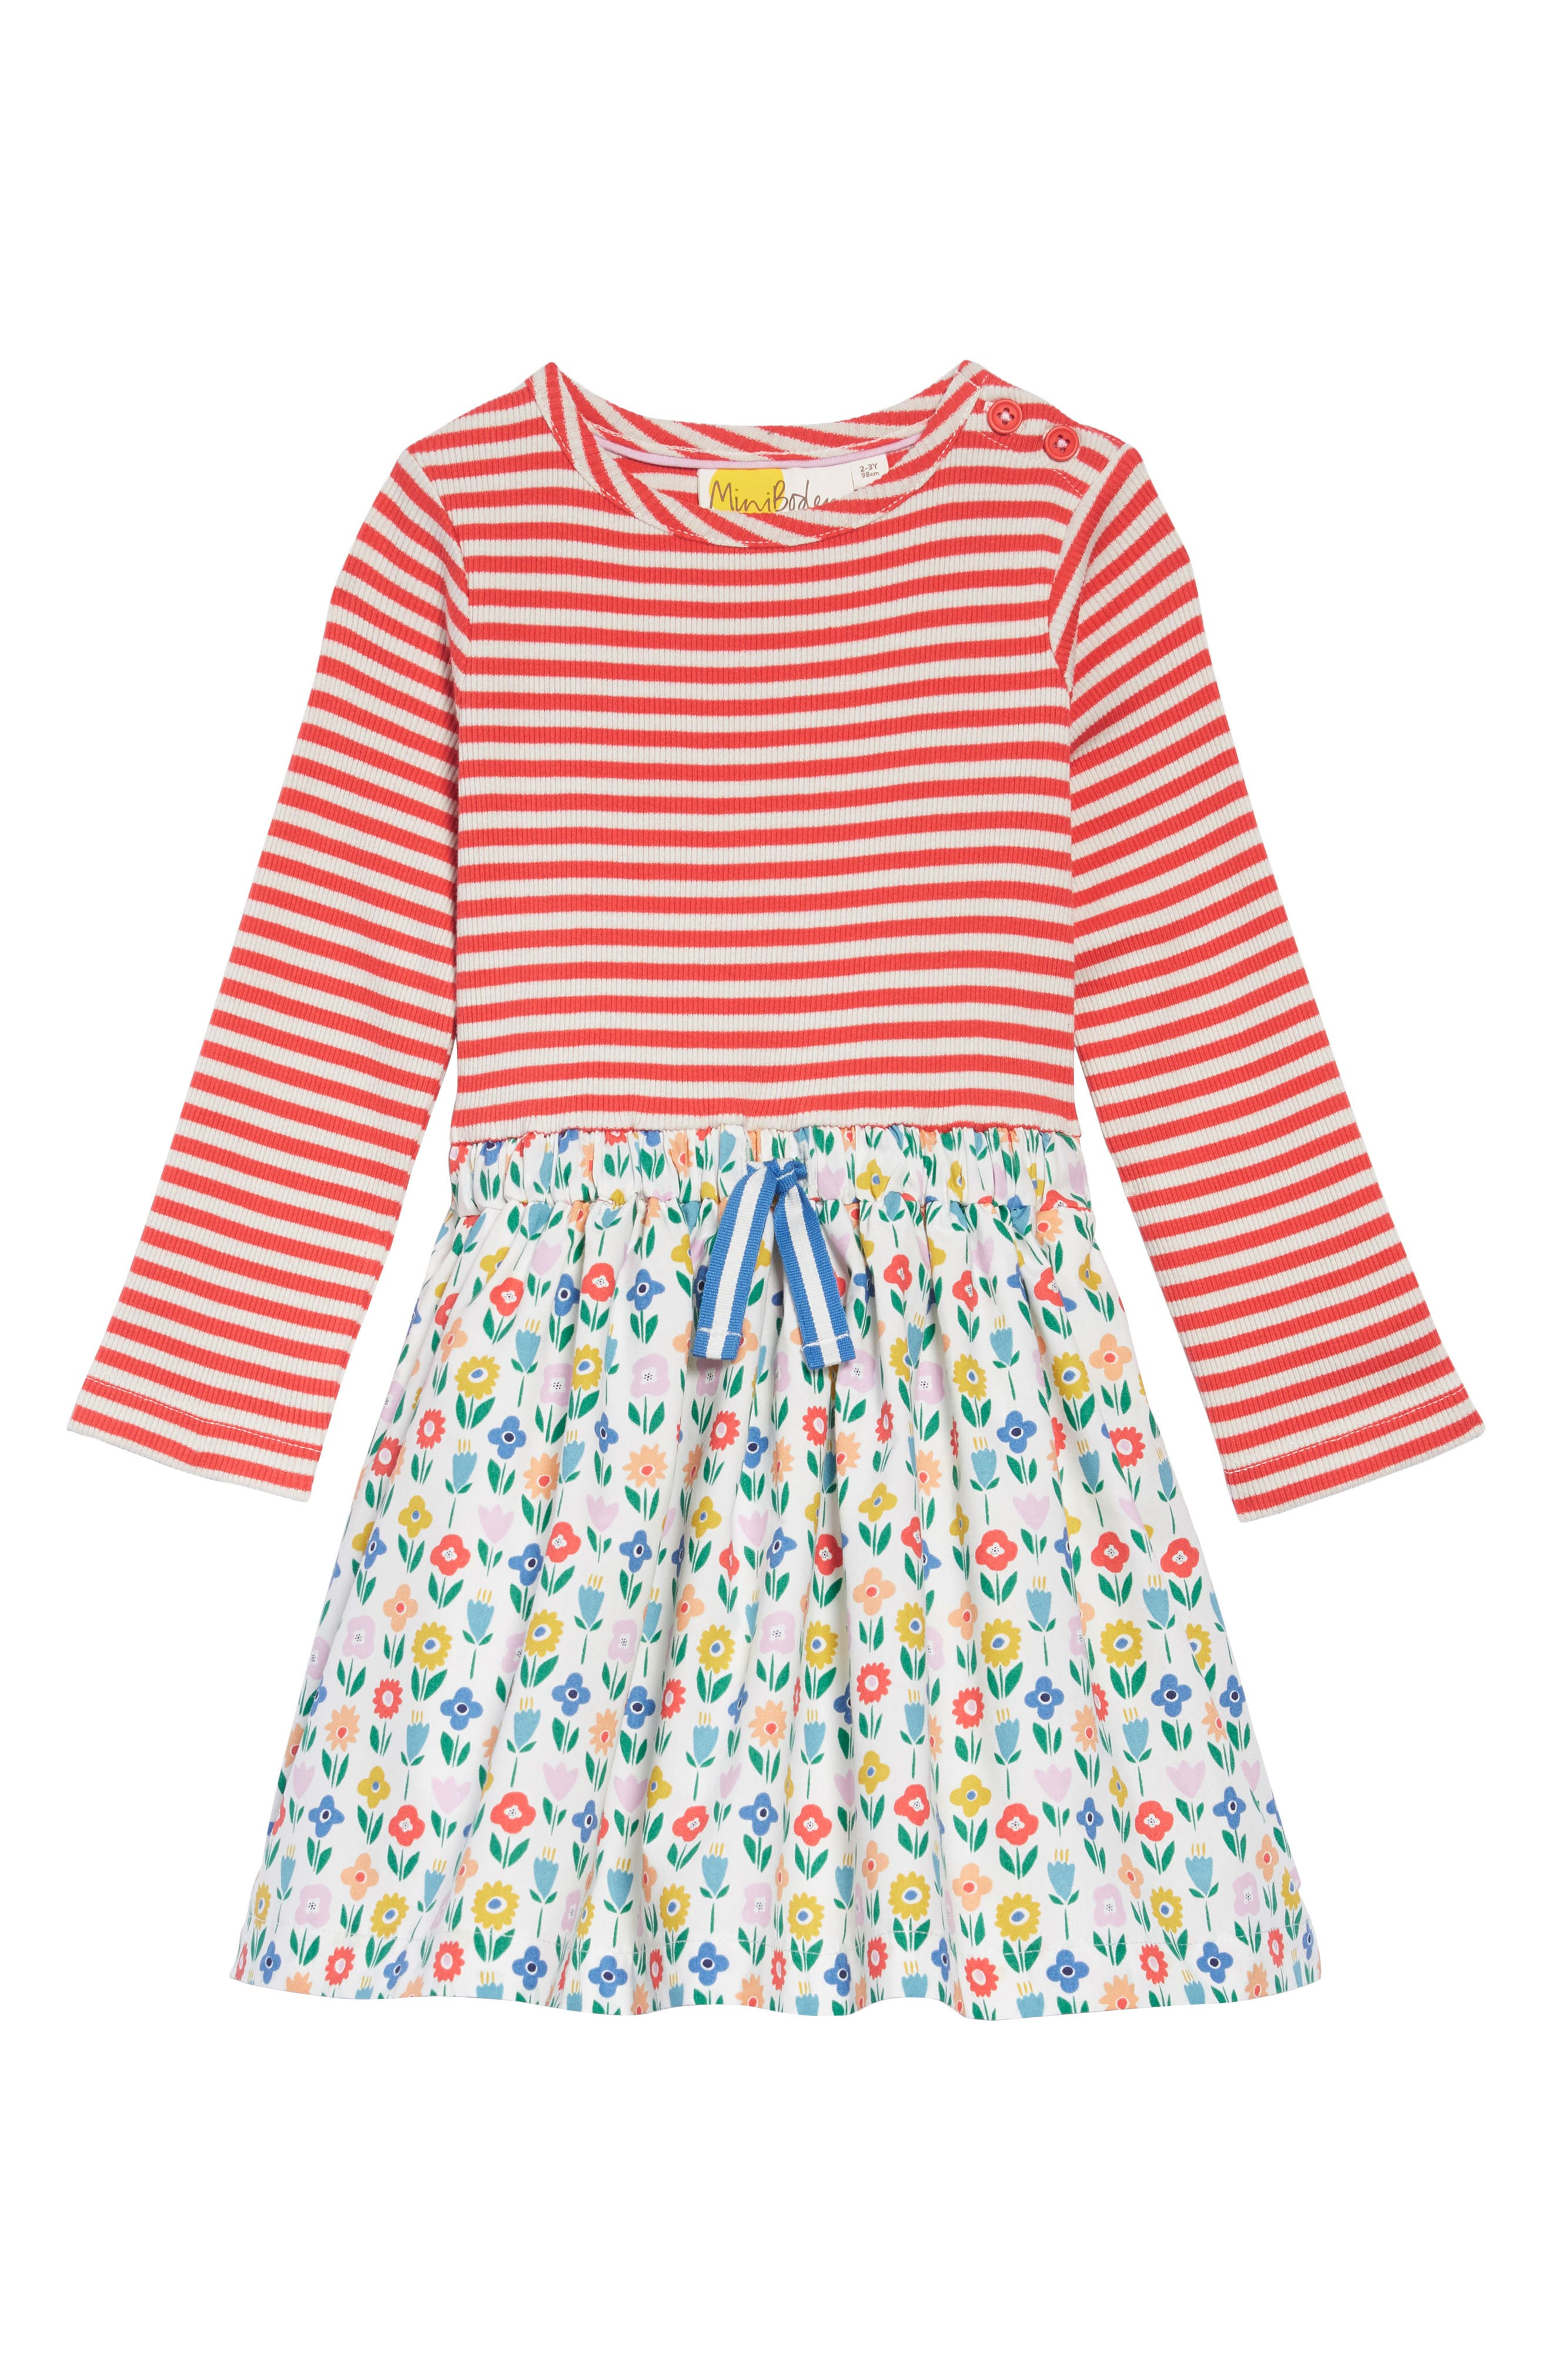 Hotchpotch Dress,                             Main thumbnail 1, color,                             IVO IVORY FLOWER PATCH